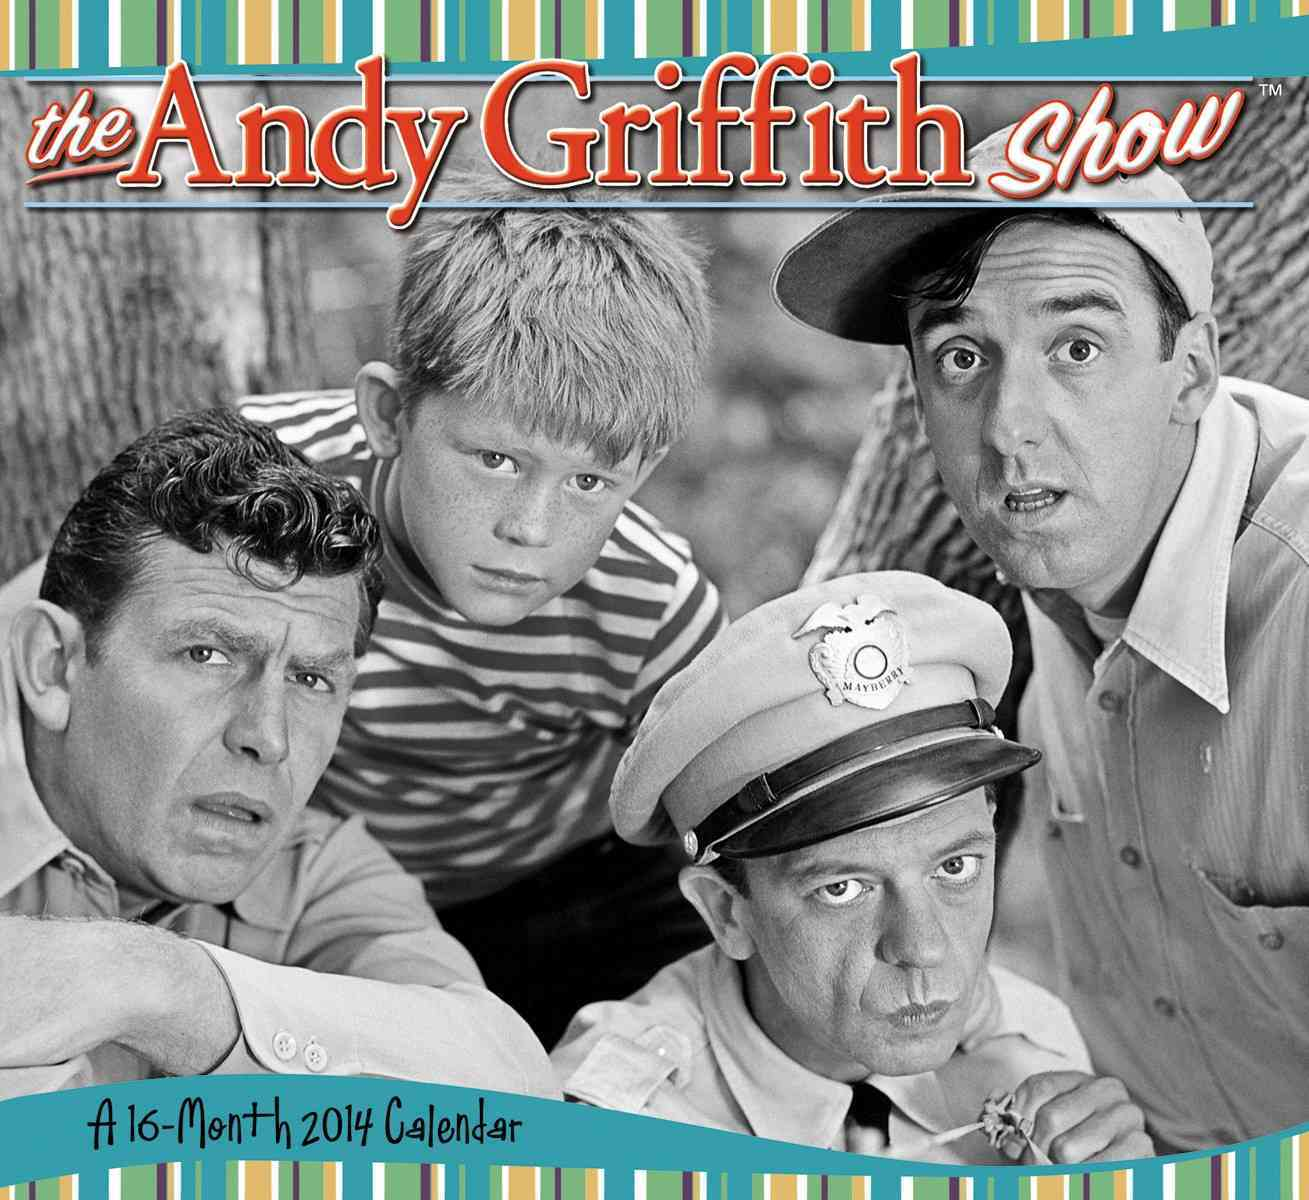 The Andy Griffith Show 2014 Calendar (Calendar)